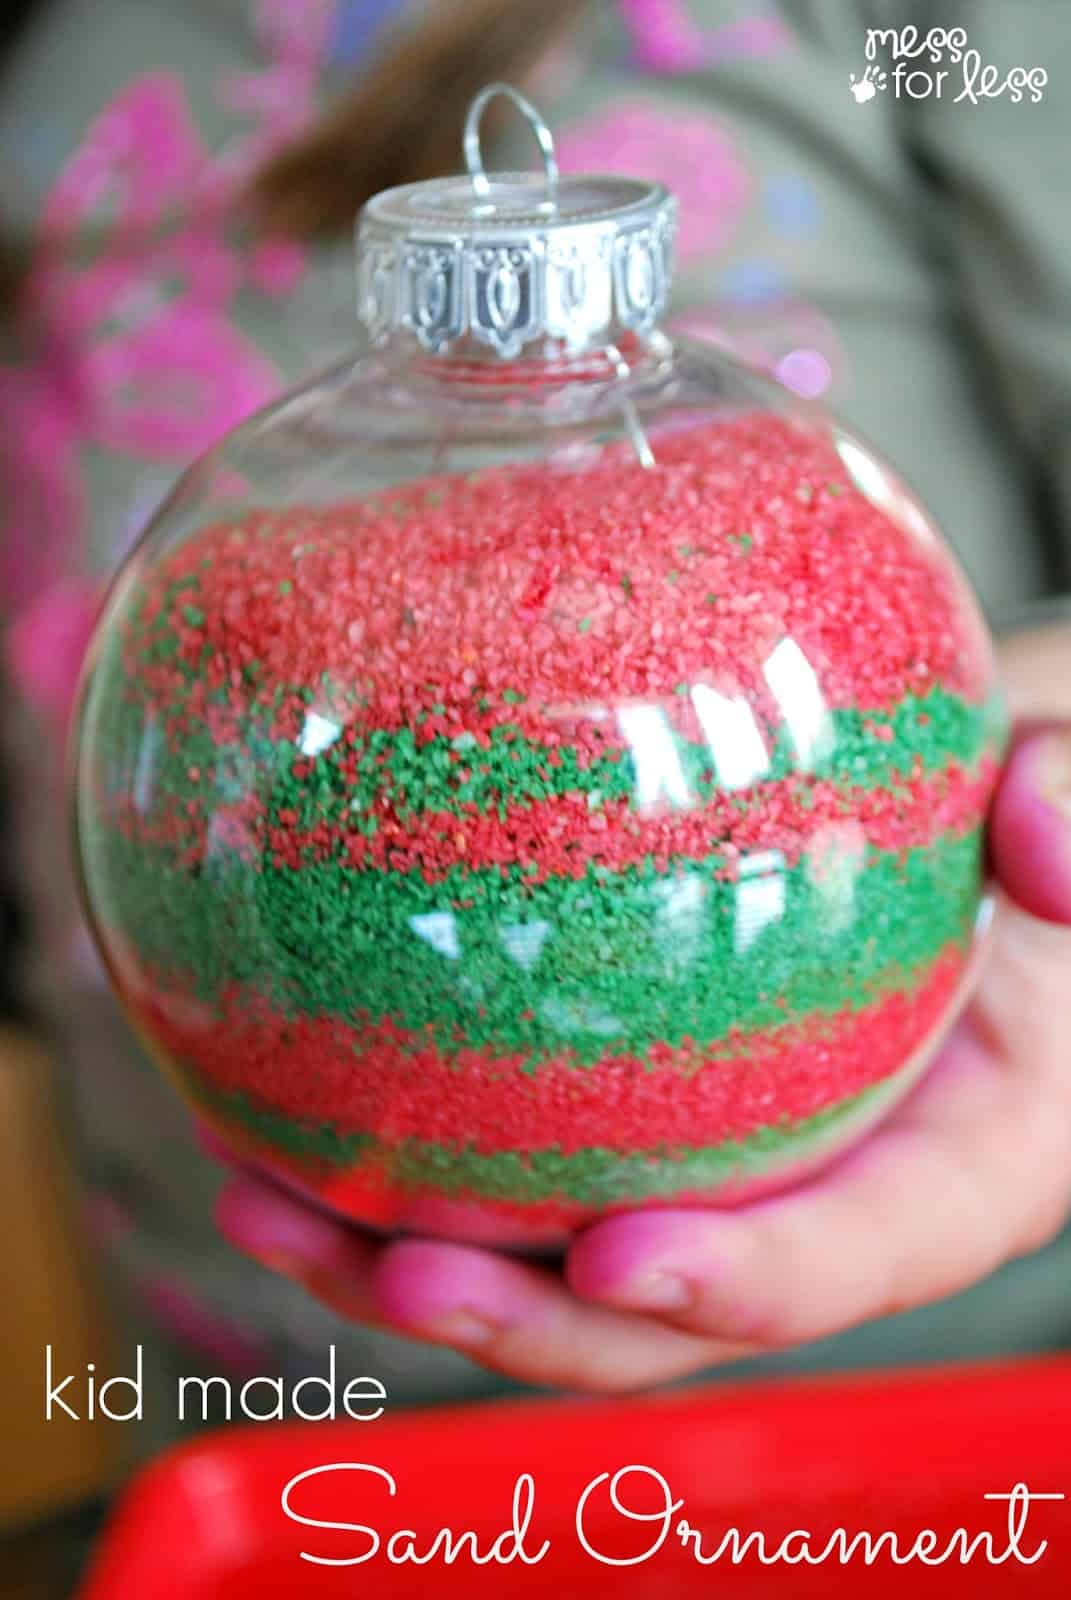 Kids homemade christmas ornaments create memories this holiday season with these eye catching sand ornaments